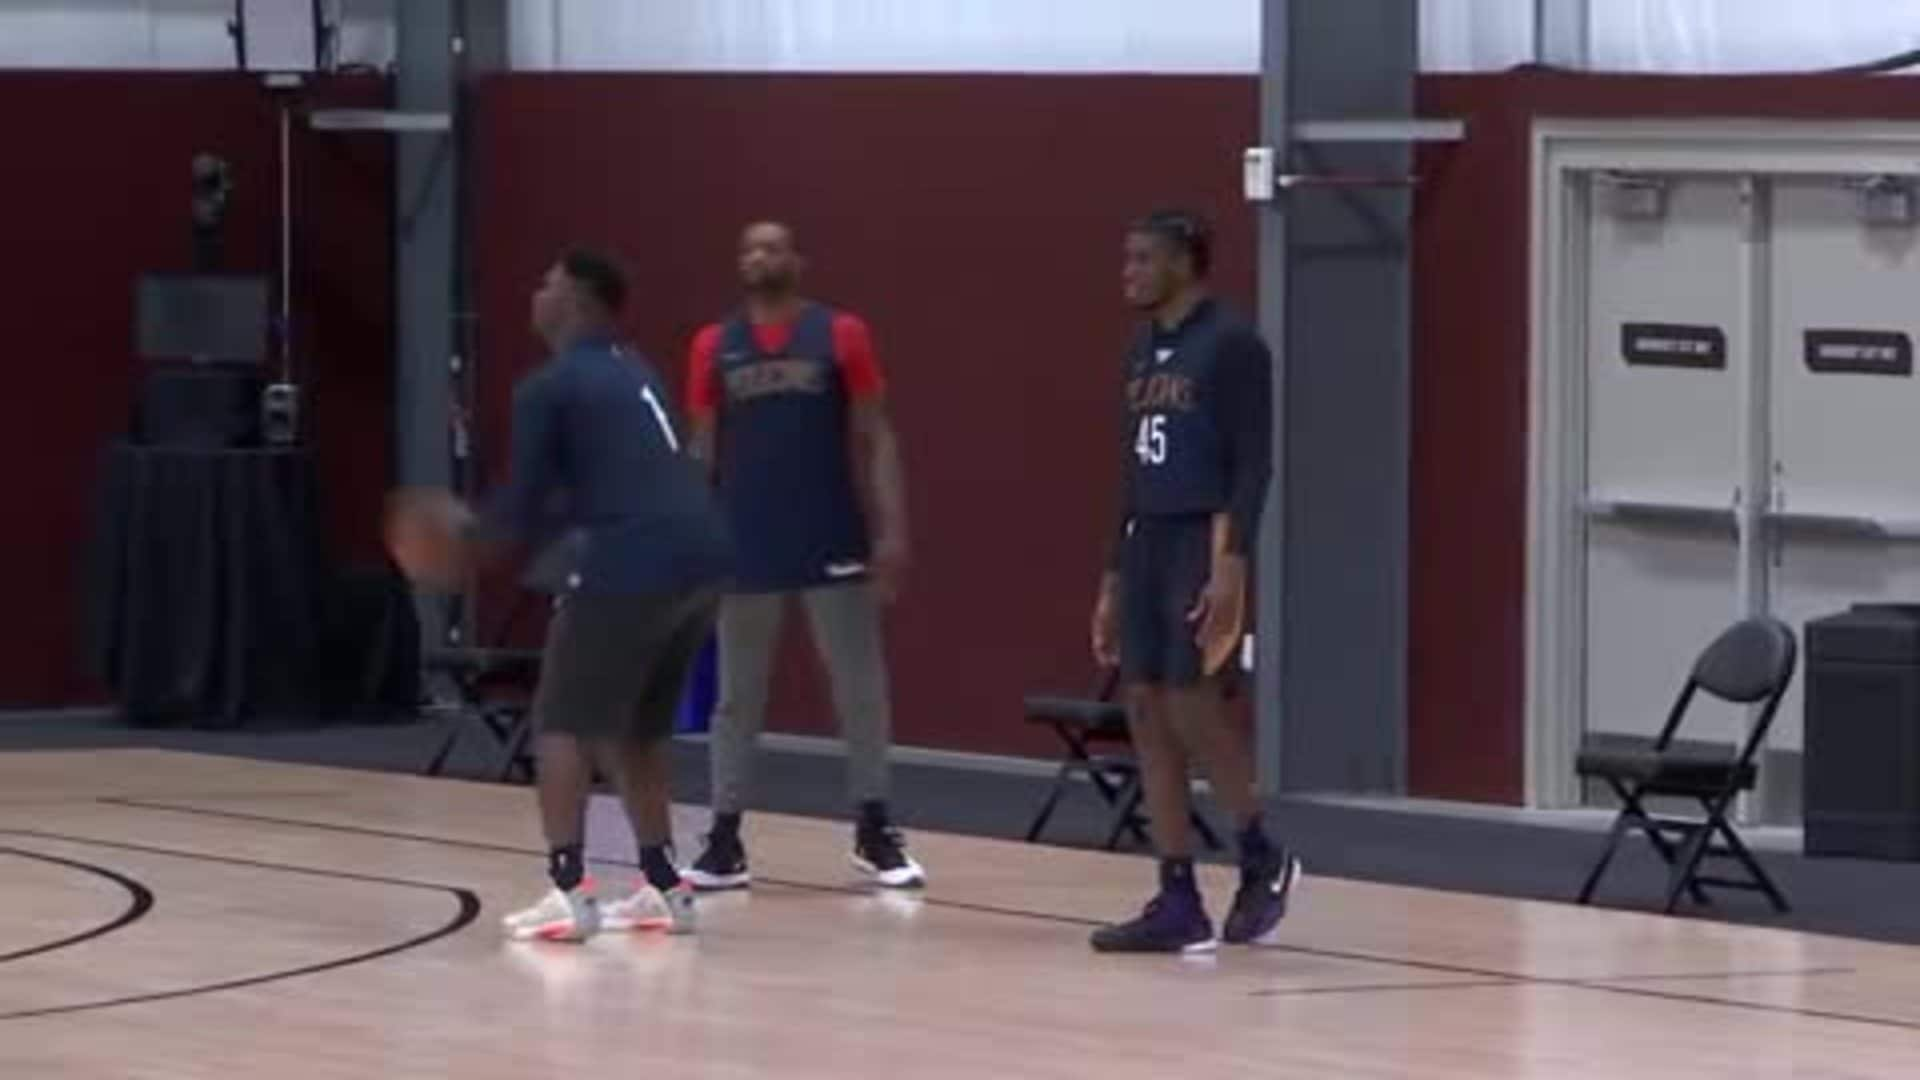 Pelicans practice highlights July 10, 2020